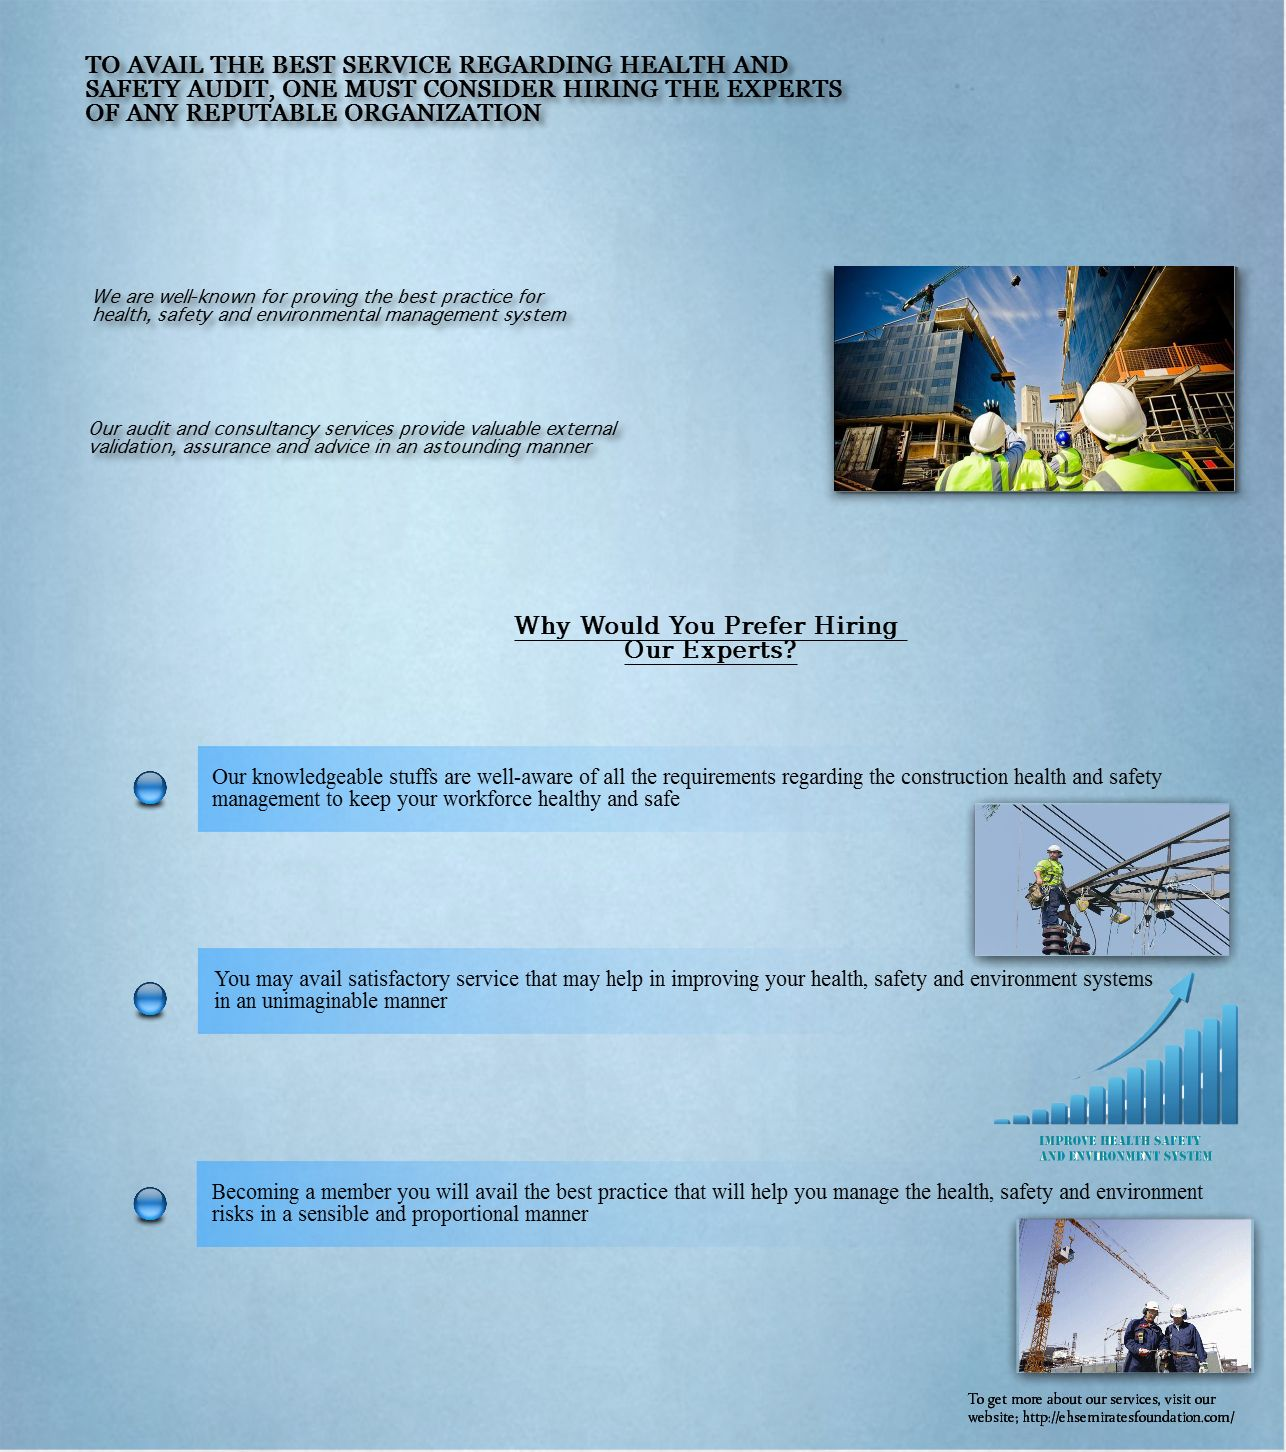 Where to Avail the Best Service for Health, Safety, and